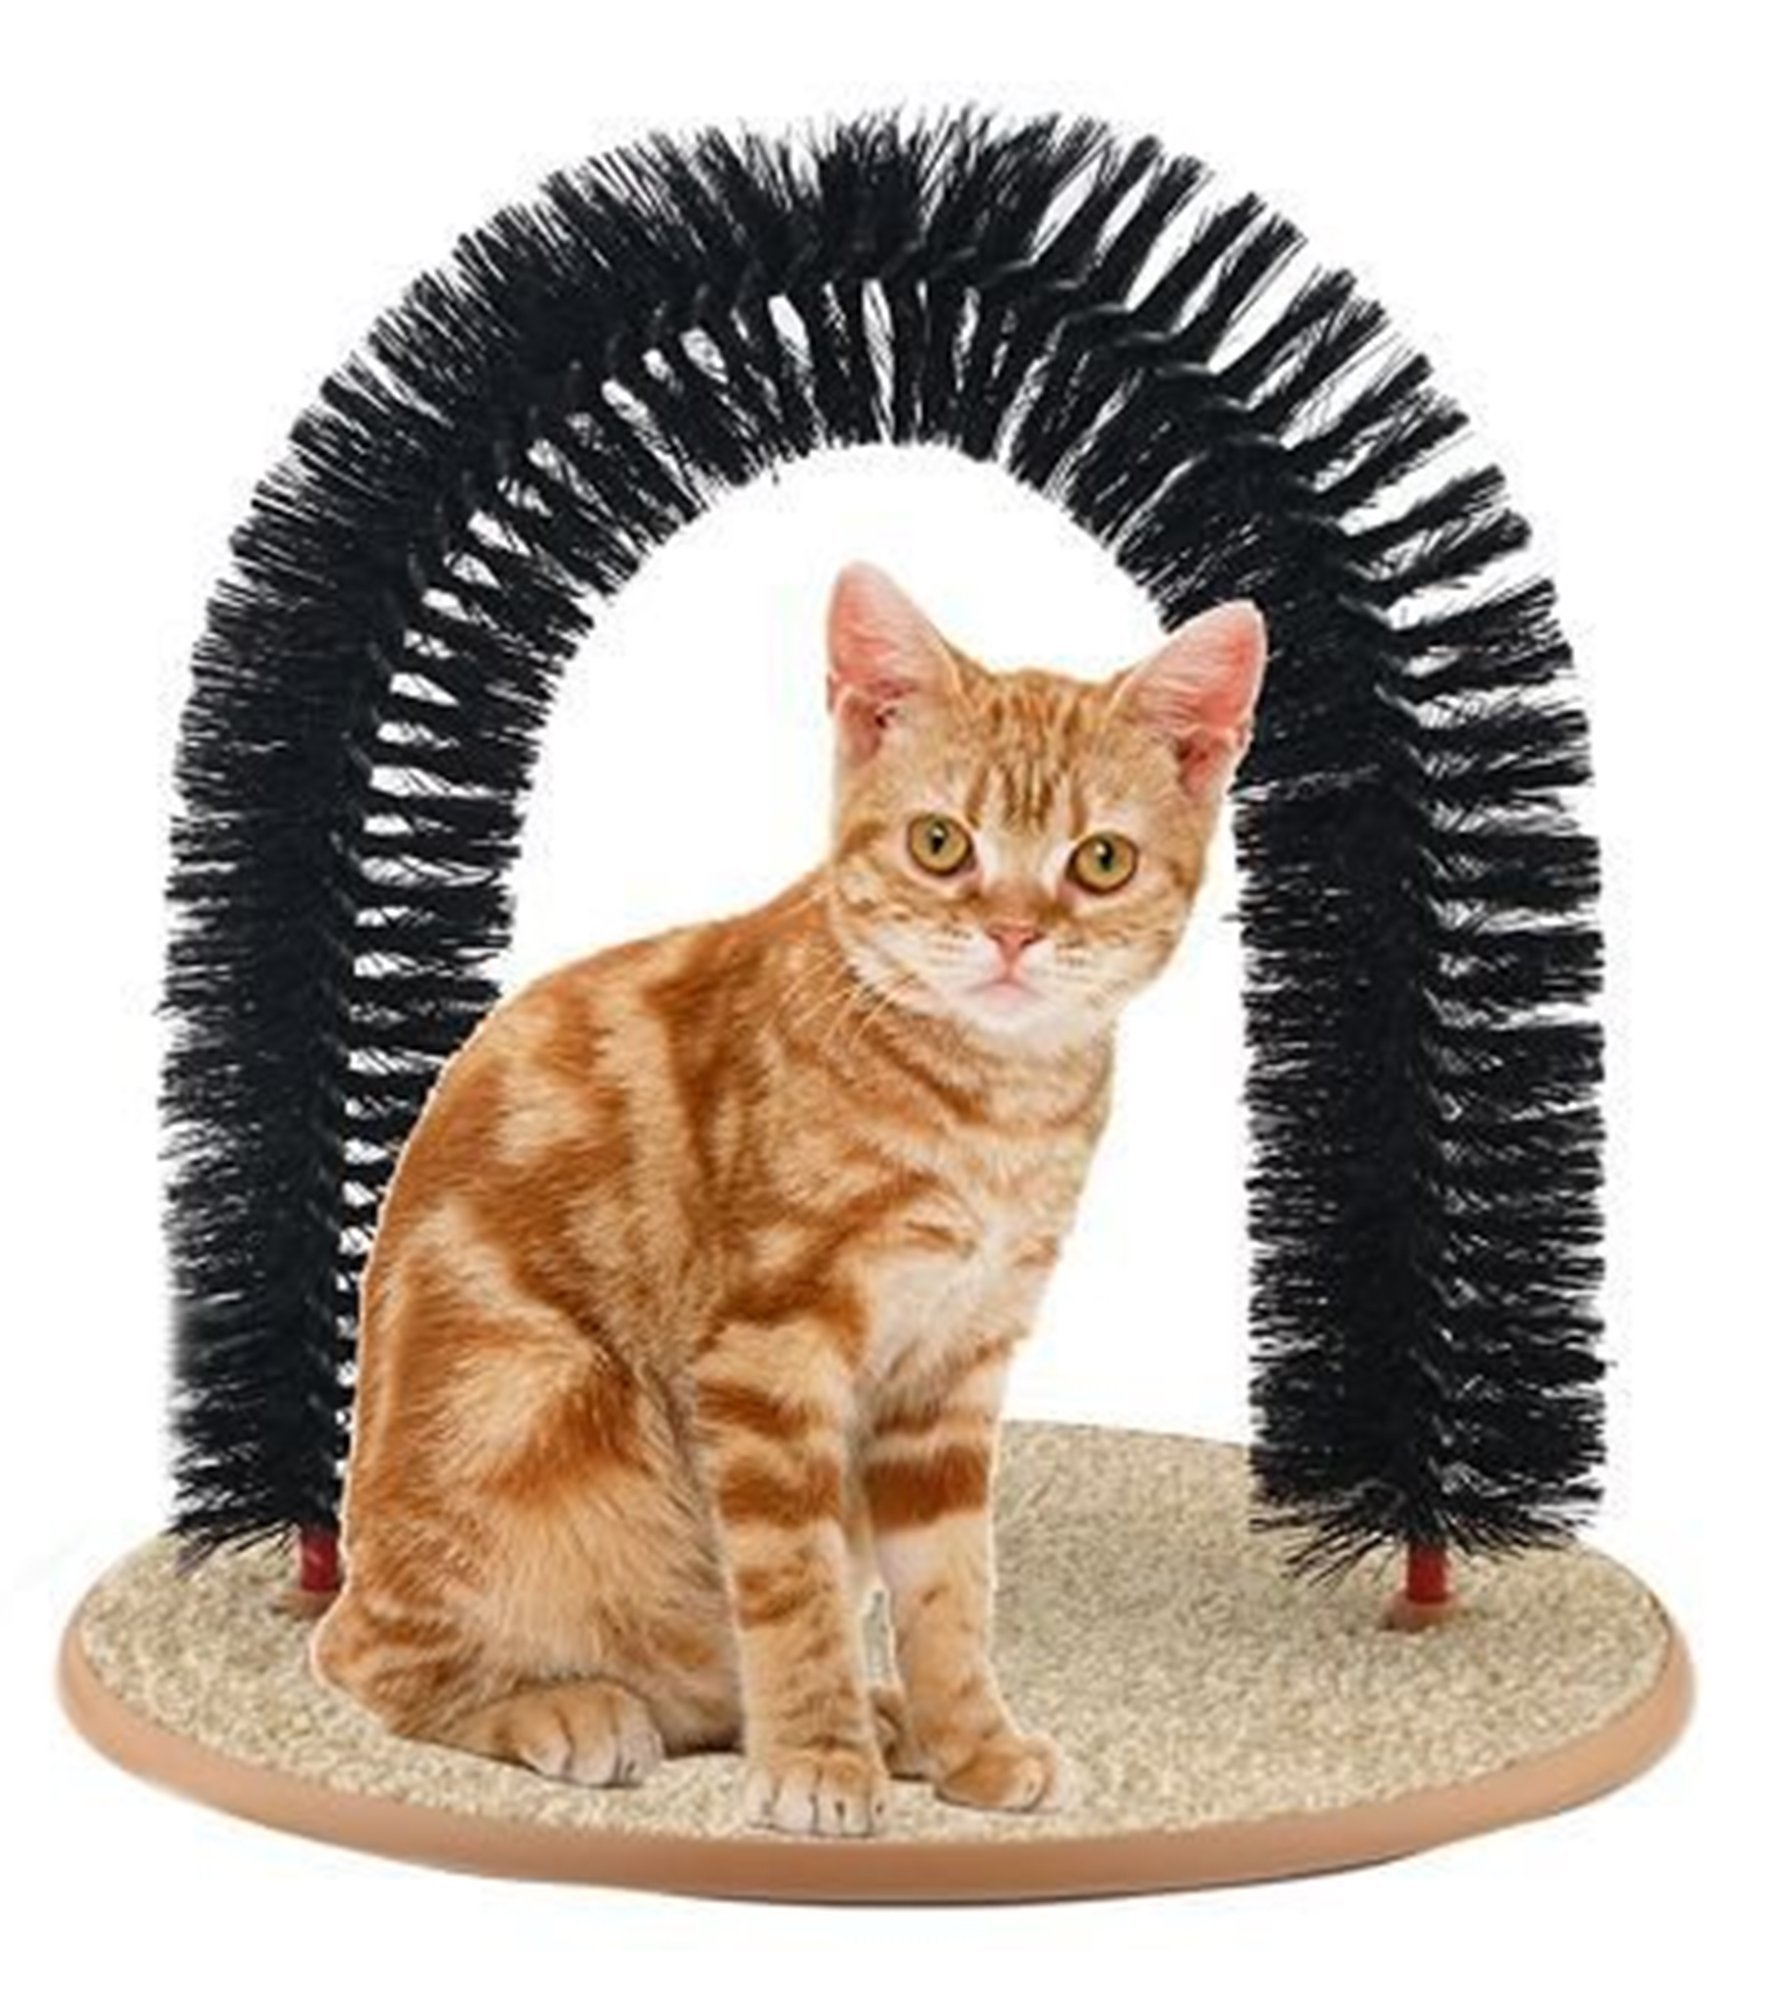 All-star Marketing Group Arch Cat Self-Groomer, Massager, Scratch Itch Toy